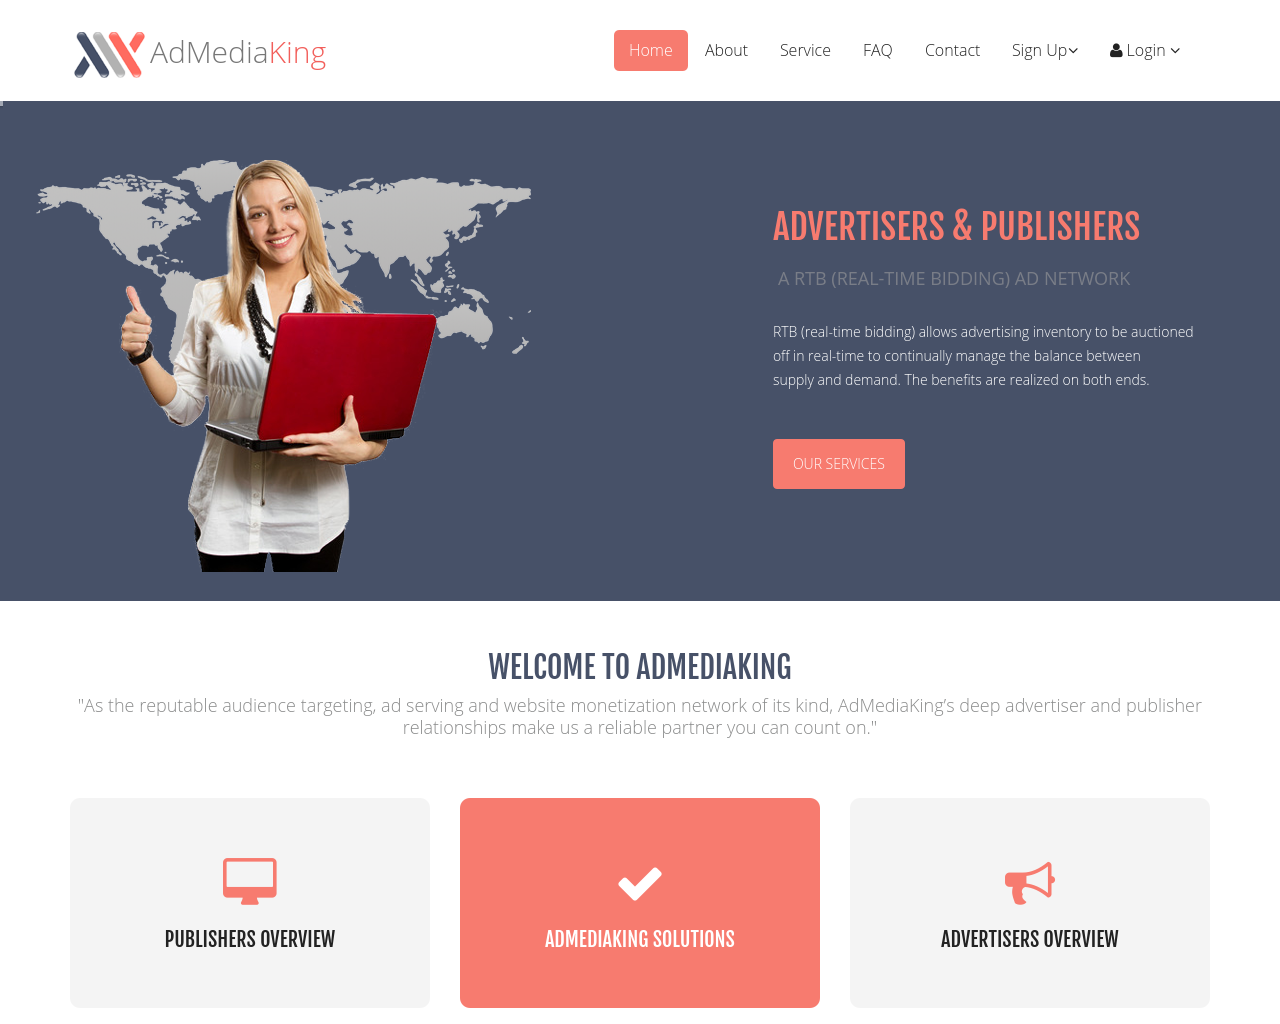 Ad-Media-King-Advertising-Reviews-Pricing